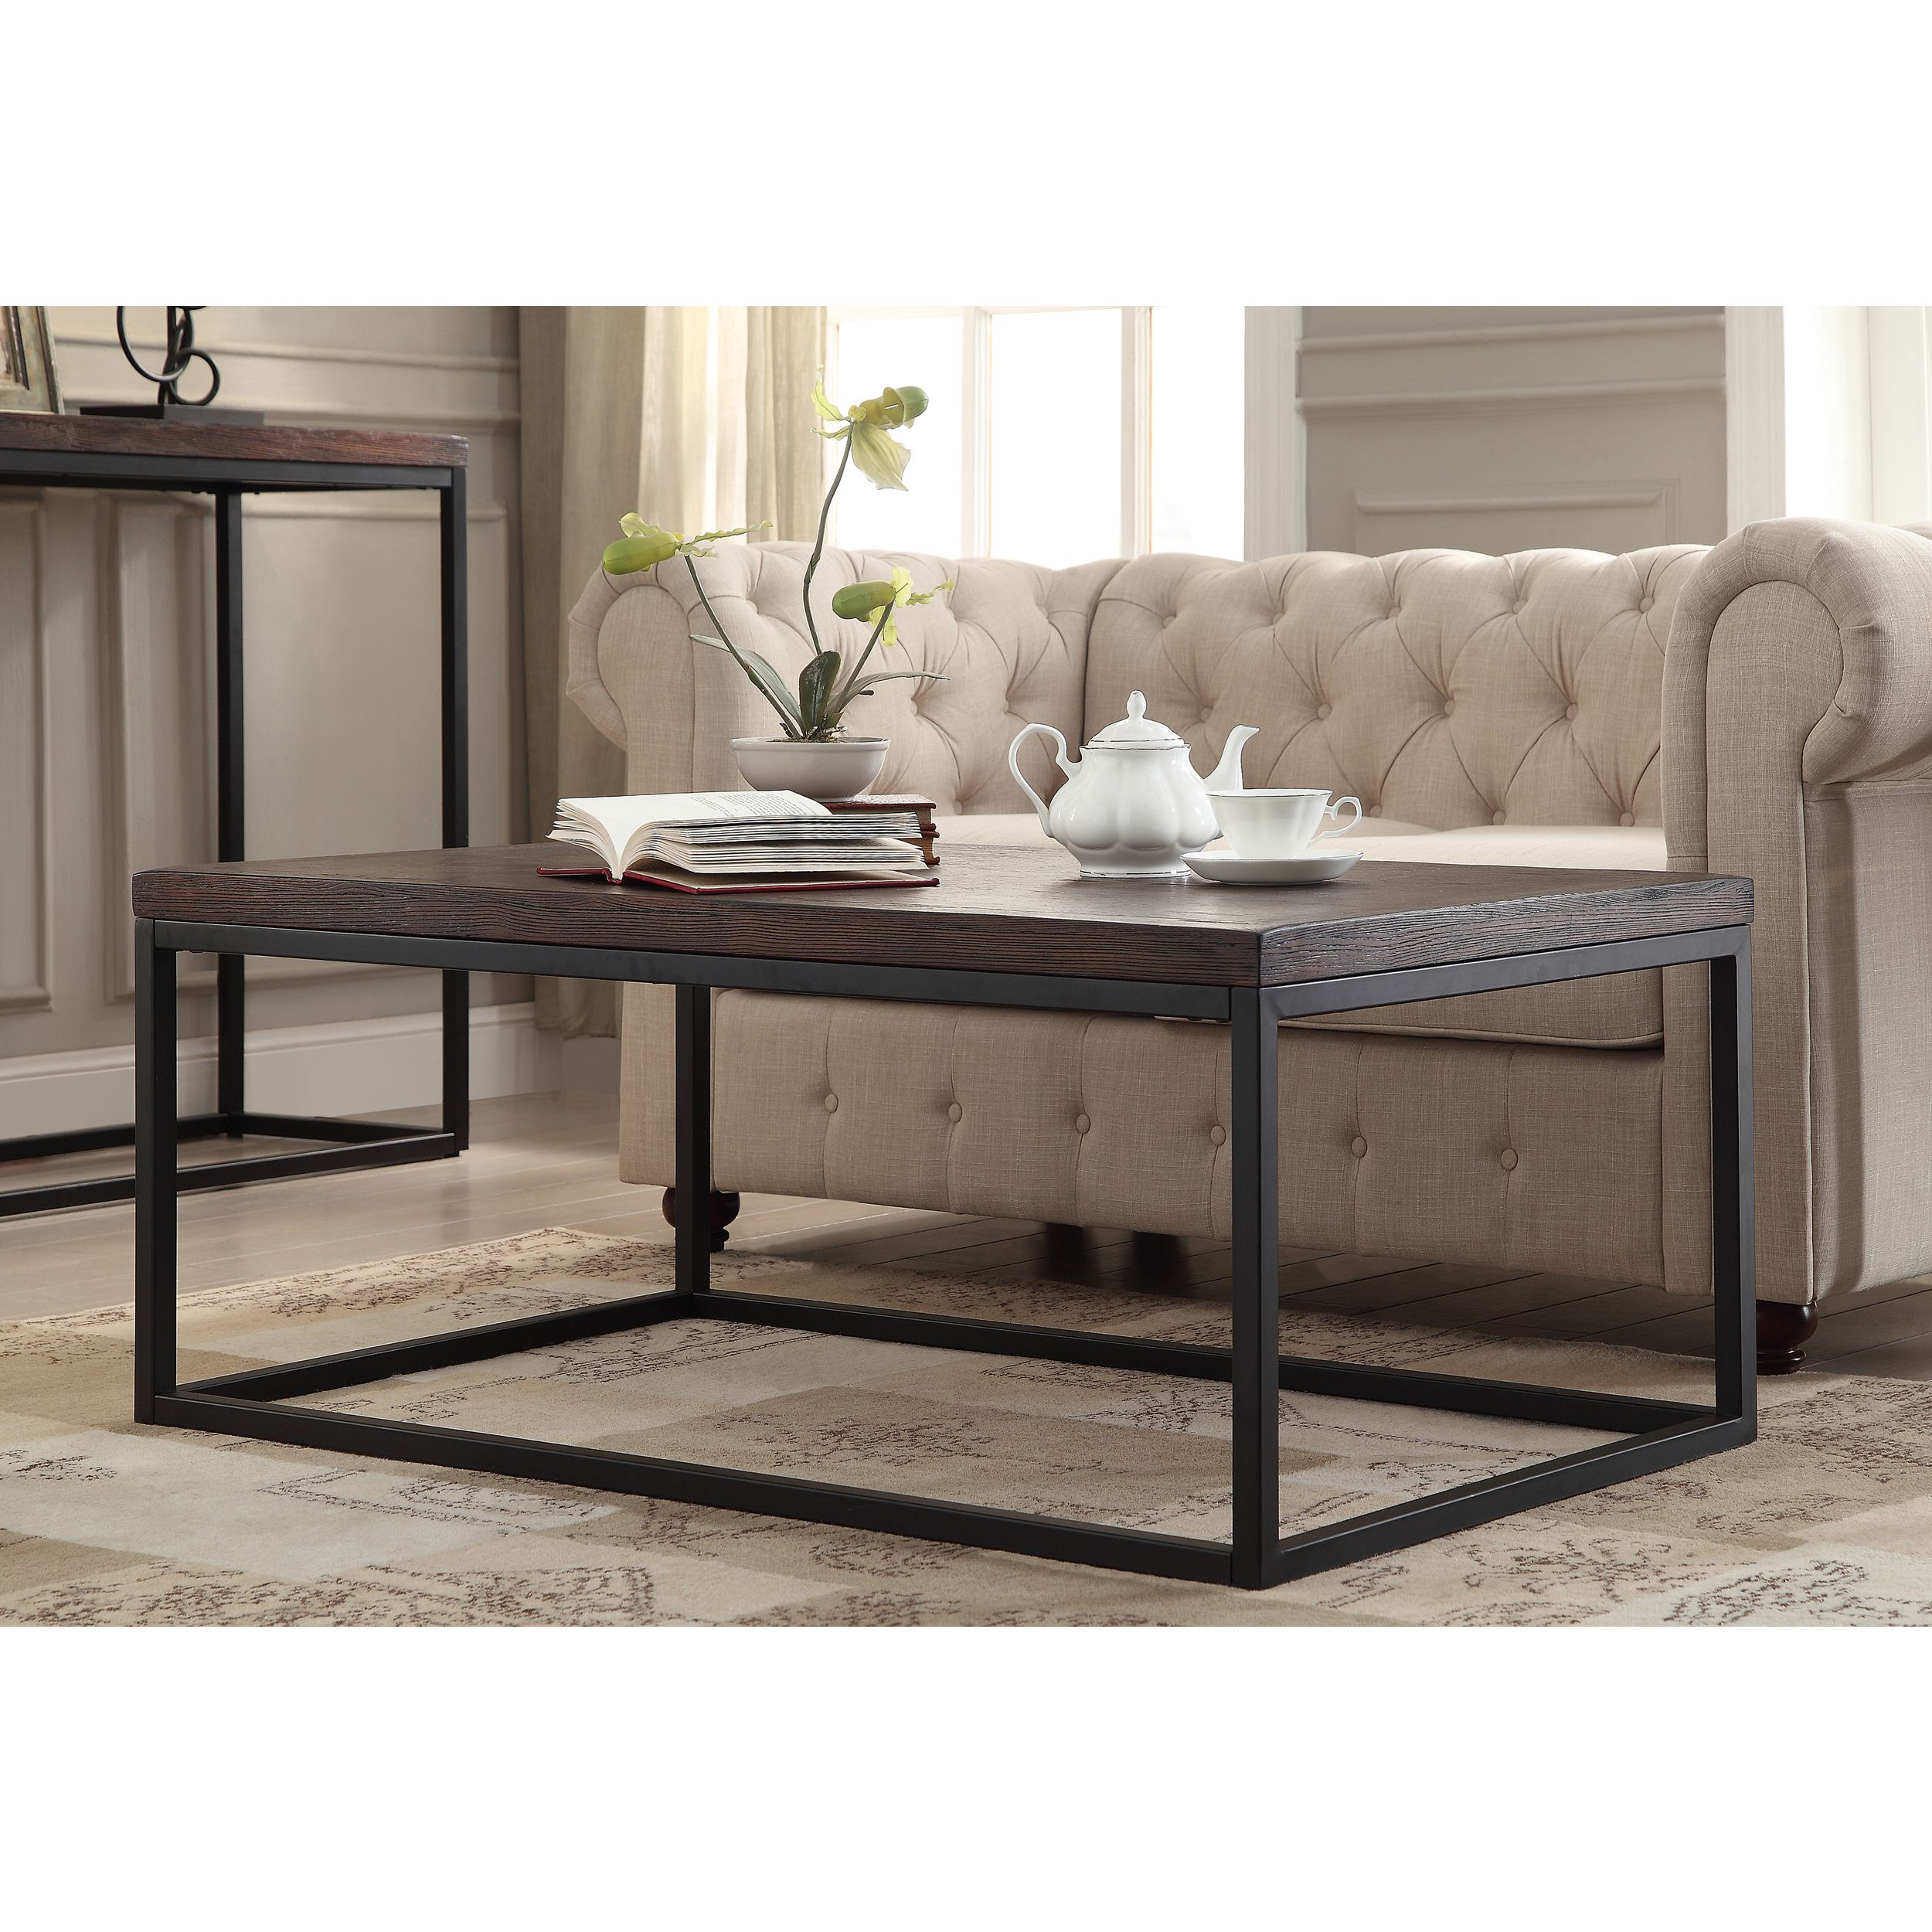 Somette Pecan Cocktail Table Overstock Shopping Great Deals on